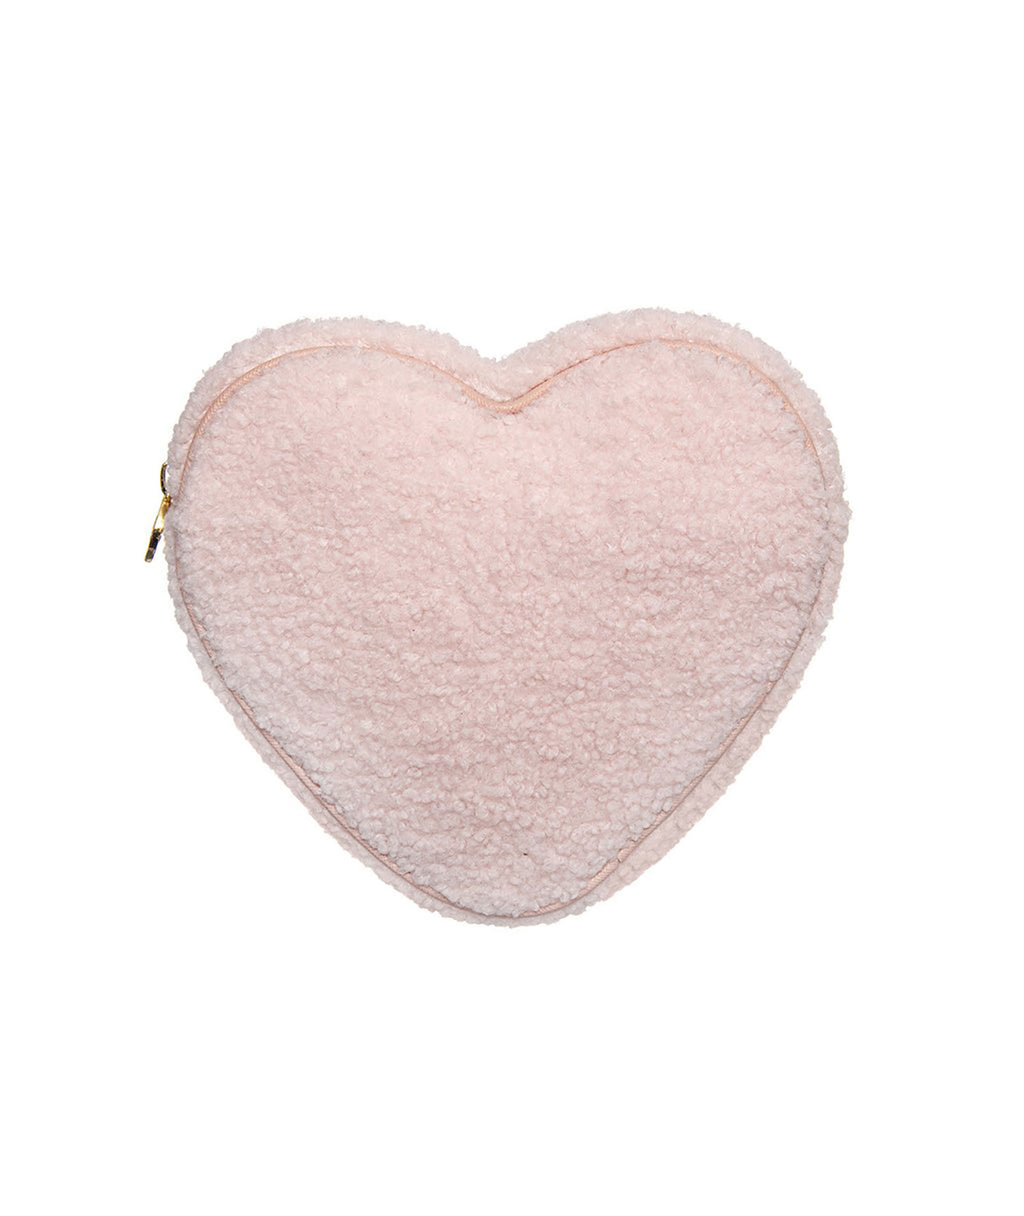 Stoney Clover Rose Cozy Heart Pouch